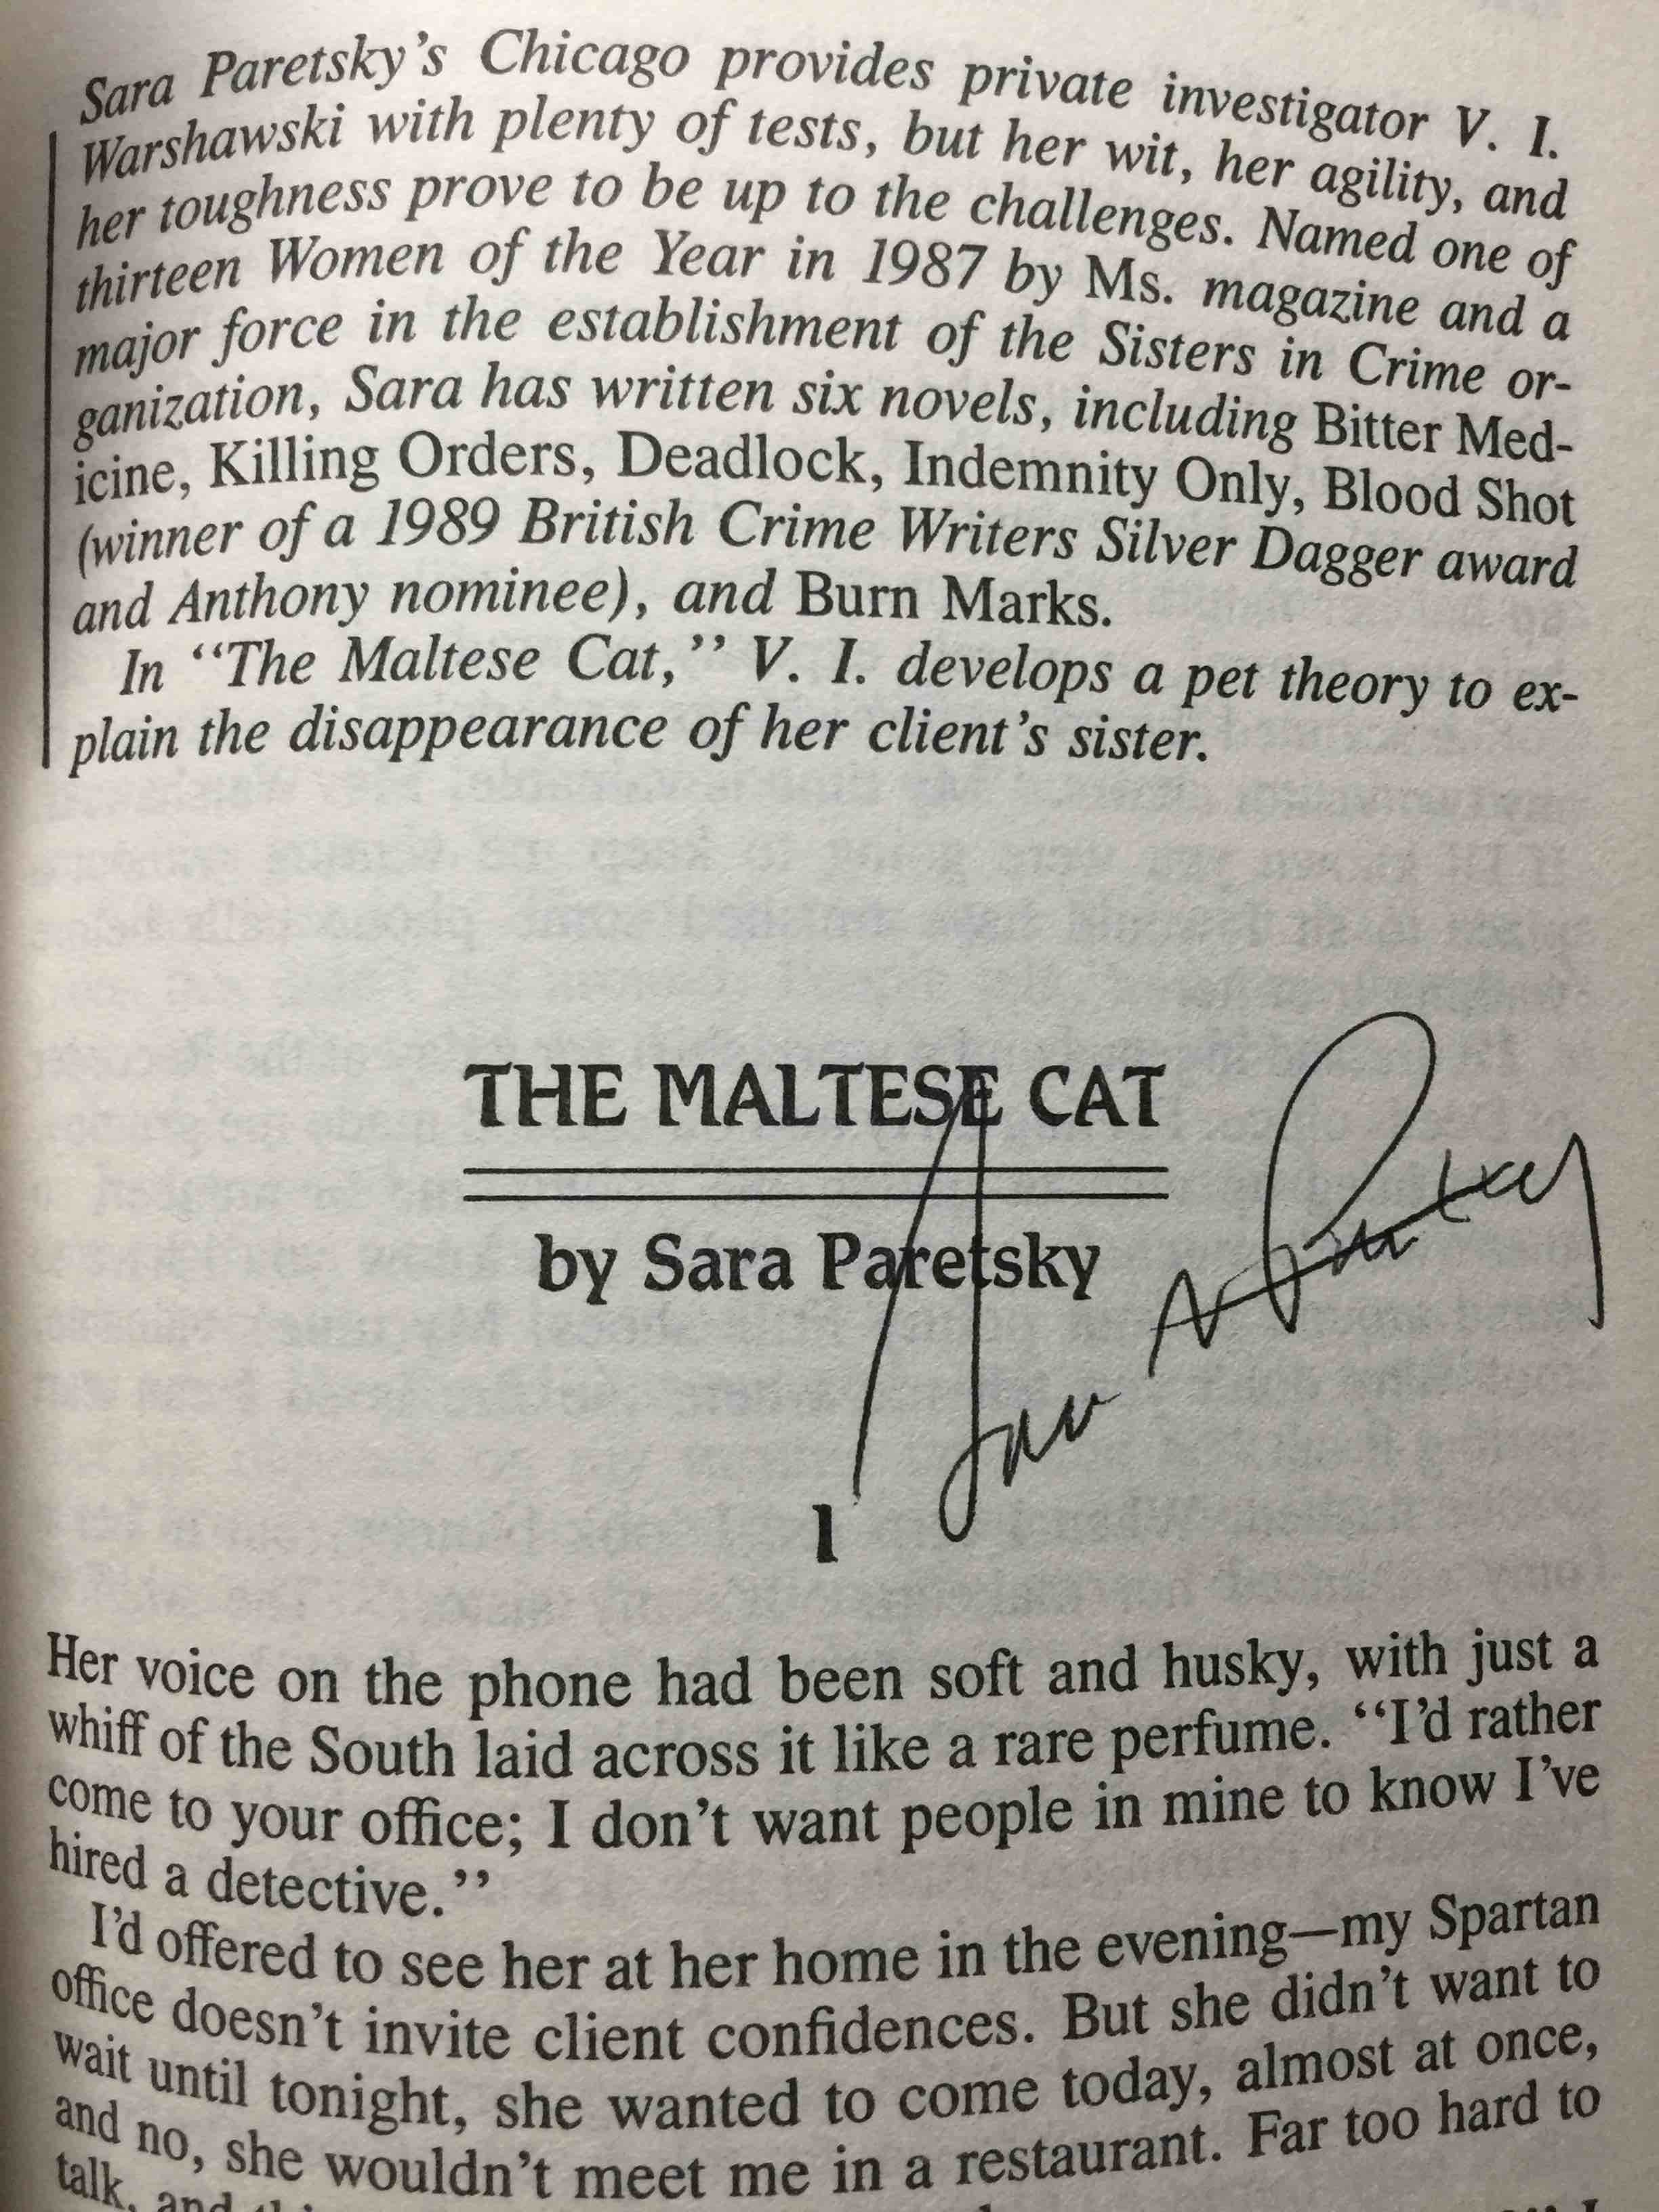 Book cover picture of (anthology) Paretsky, Sara, signed.  Roberts, Gillian, Chelsea Quinn Yarbro, Susan Trott and others, contributors.  Wallace, Marilyn, editor. SISTERS IN CRIME 3. New York: Berkley, (1990.)